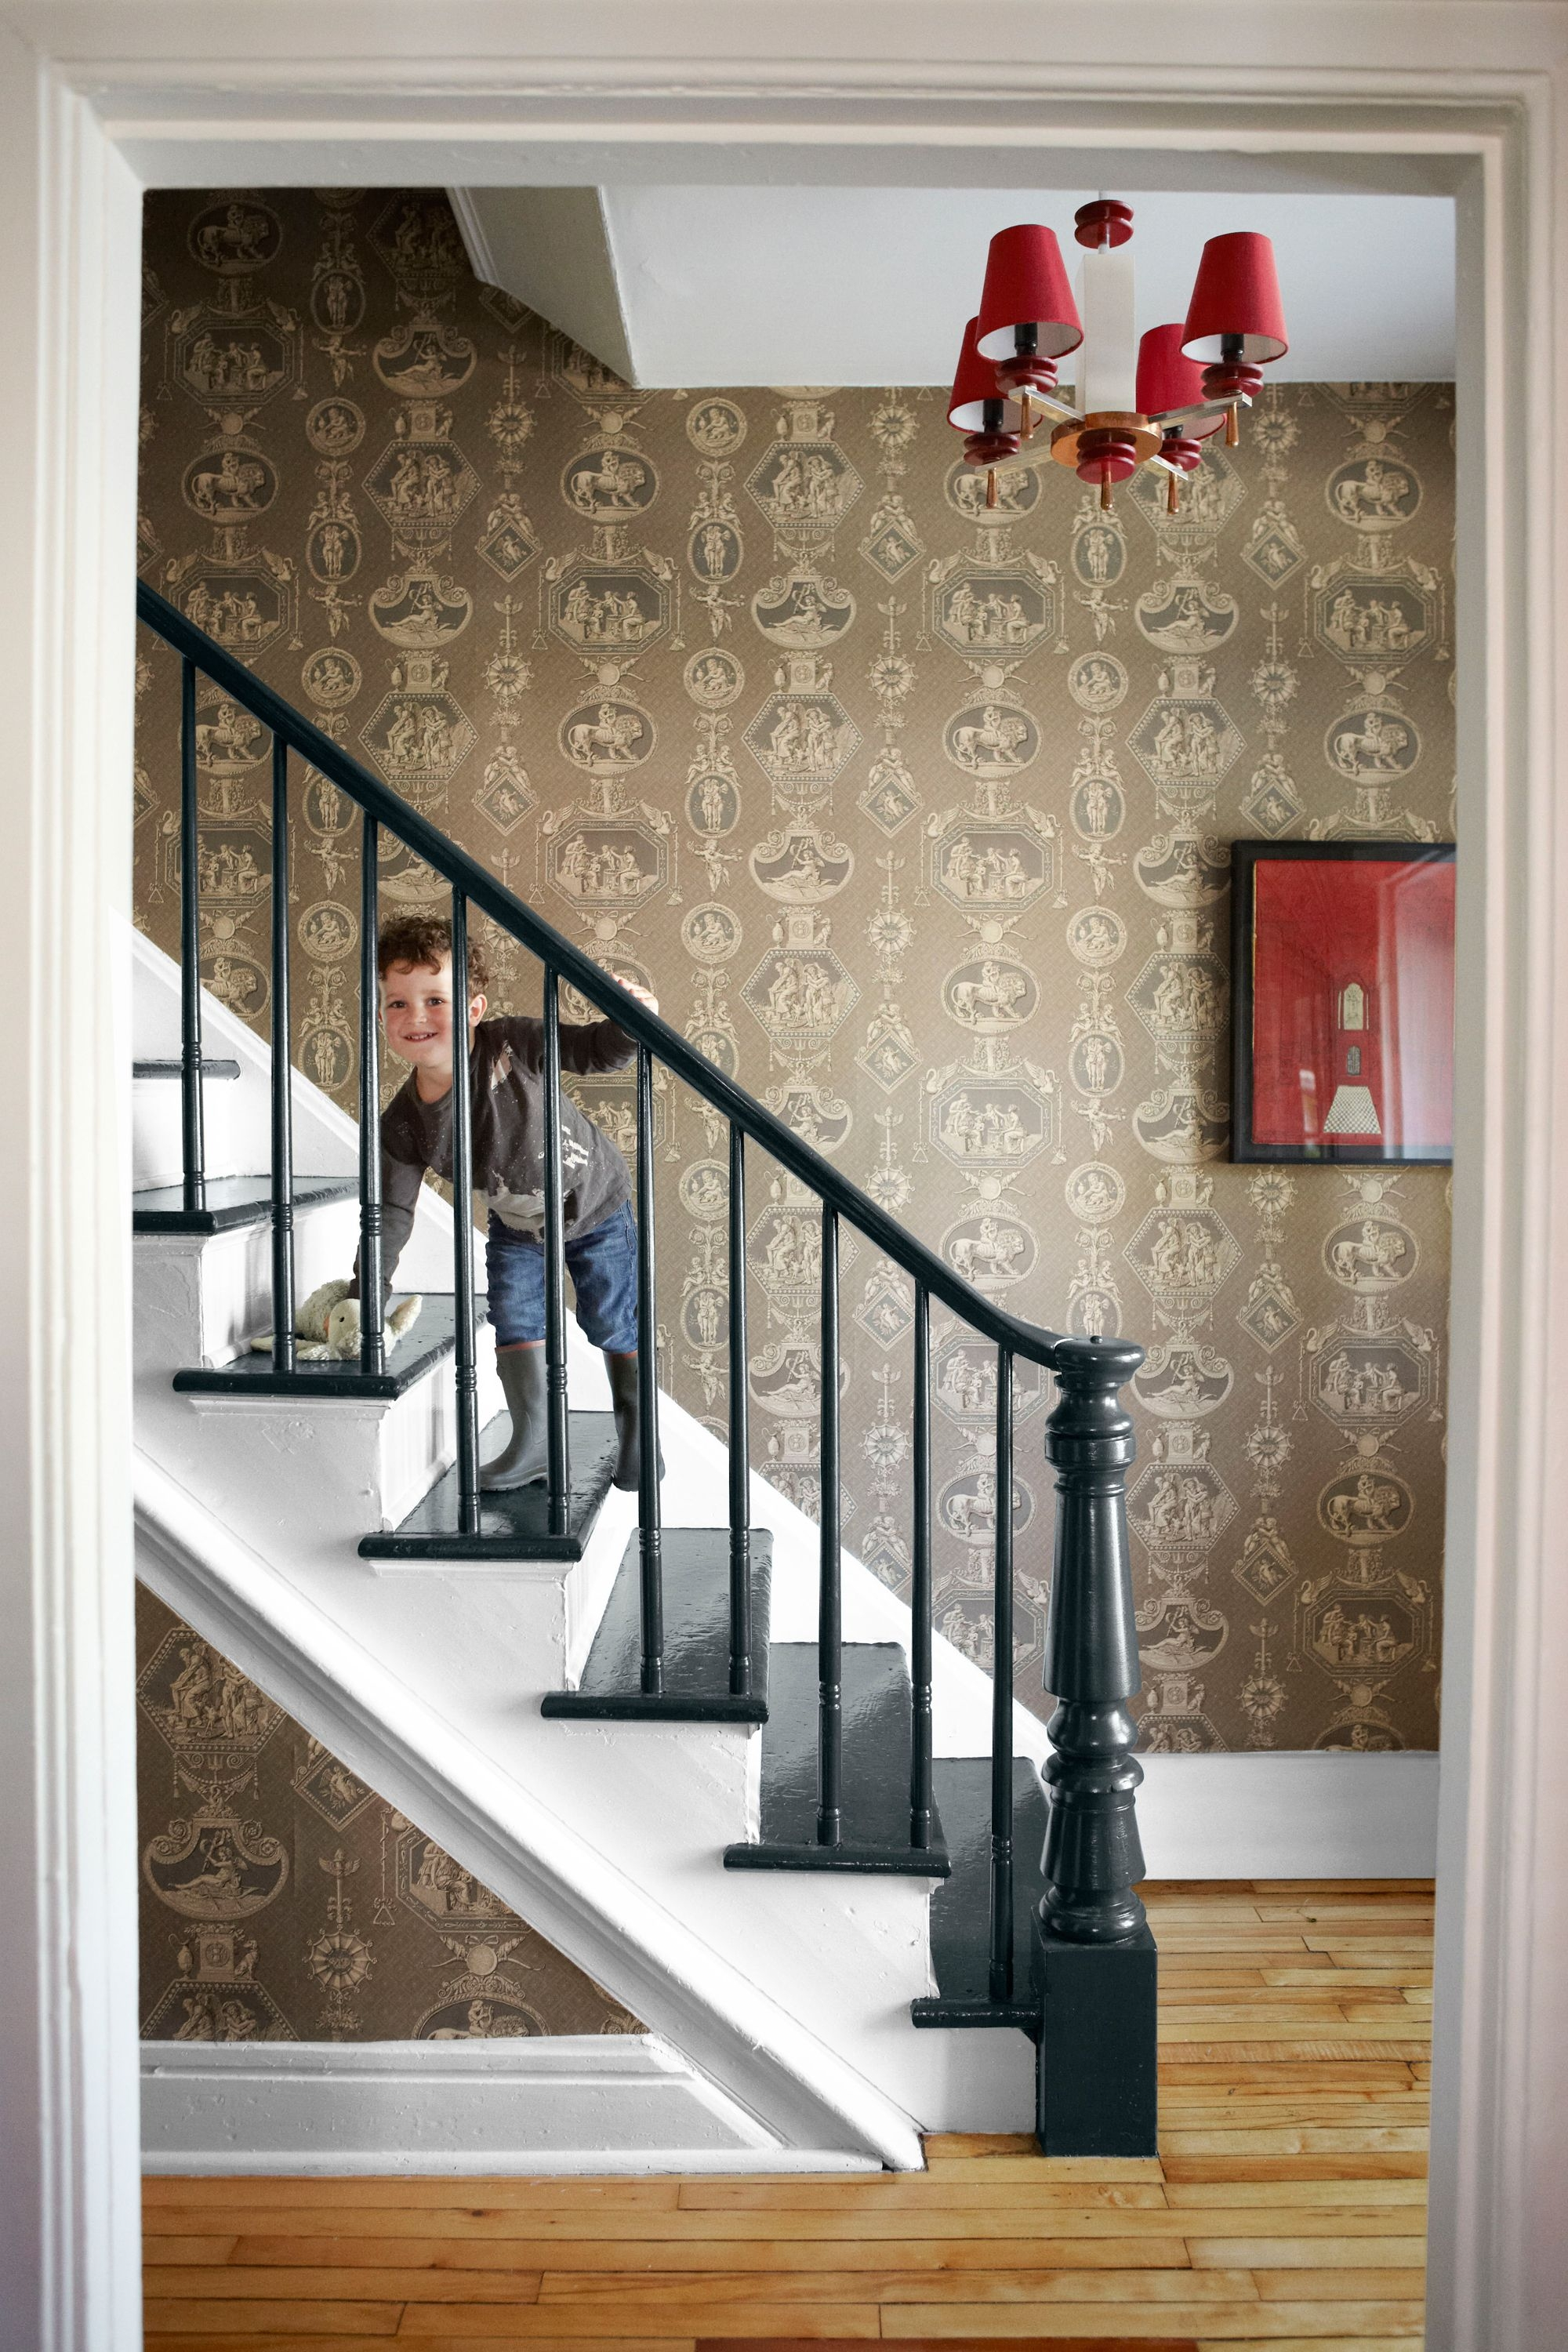 55 Best Staircase Ideas Top Ways To Decorate A Stairway | Interior Design Staircase Wall | Luxurious Home | Unique | Beautiful | Fancy | Building Interior